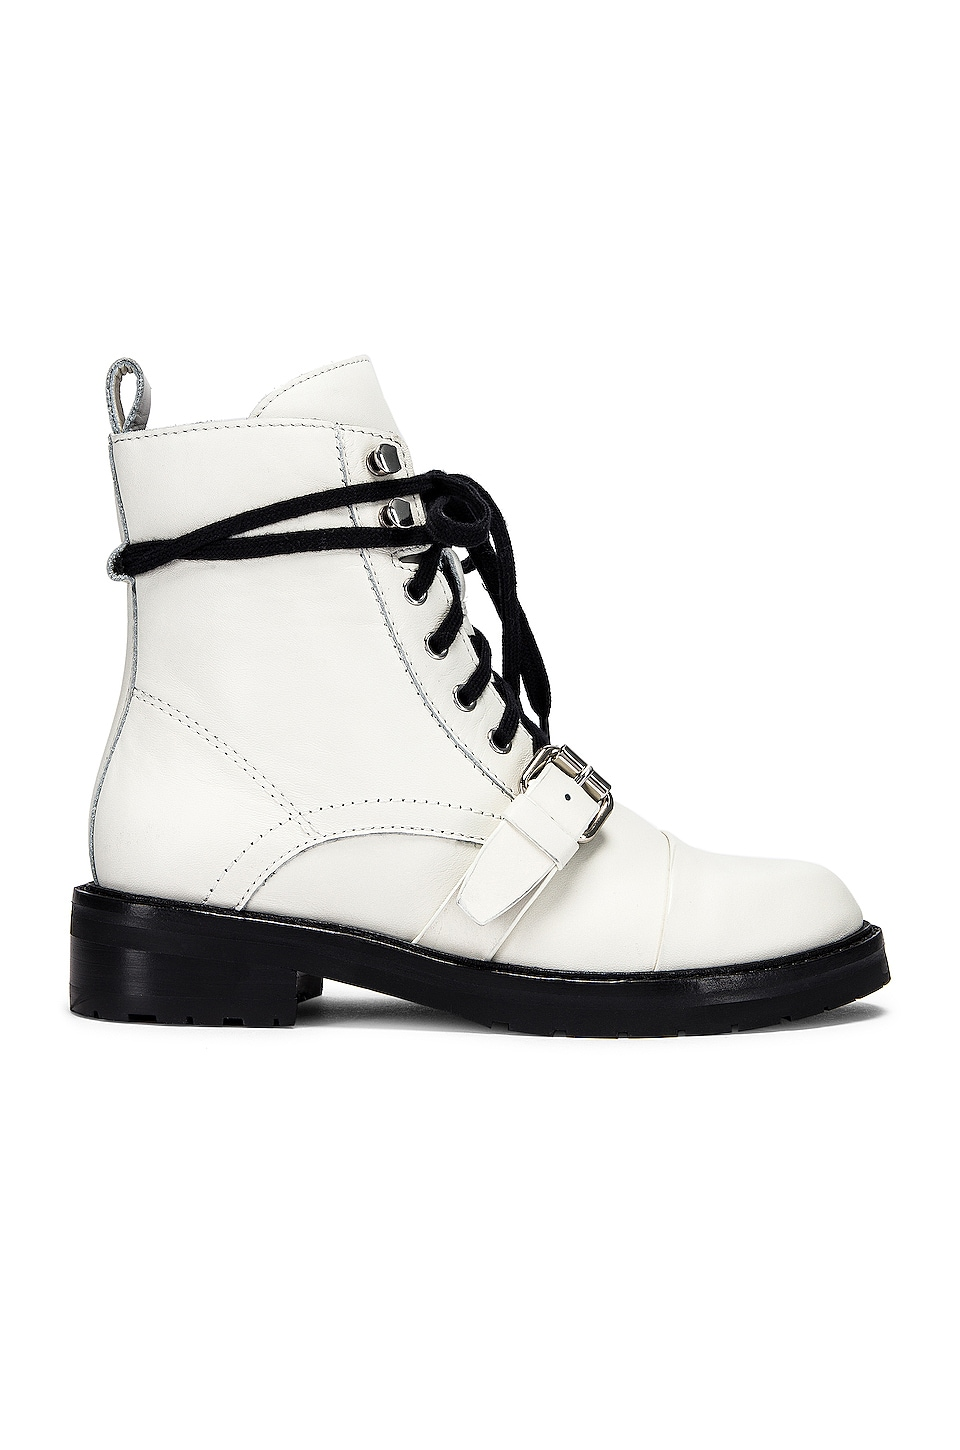 ALLSAINTS Donita Boot in White